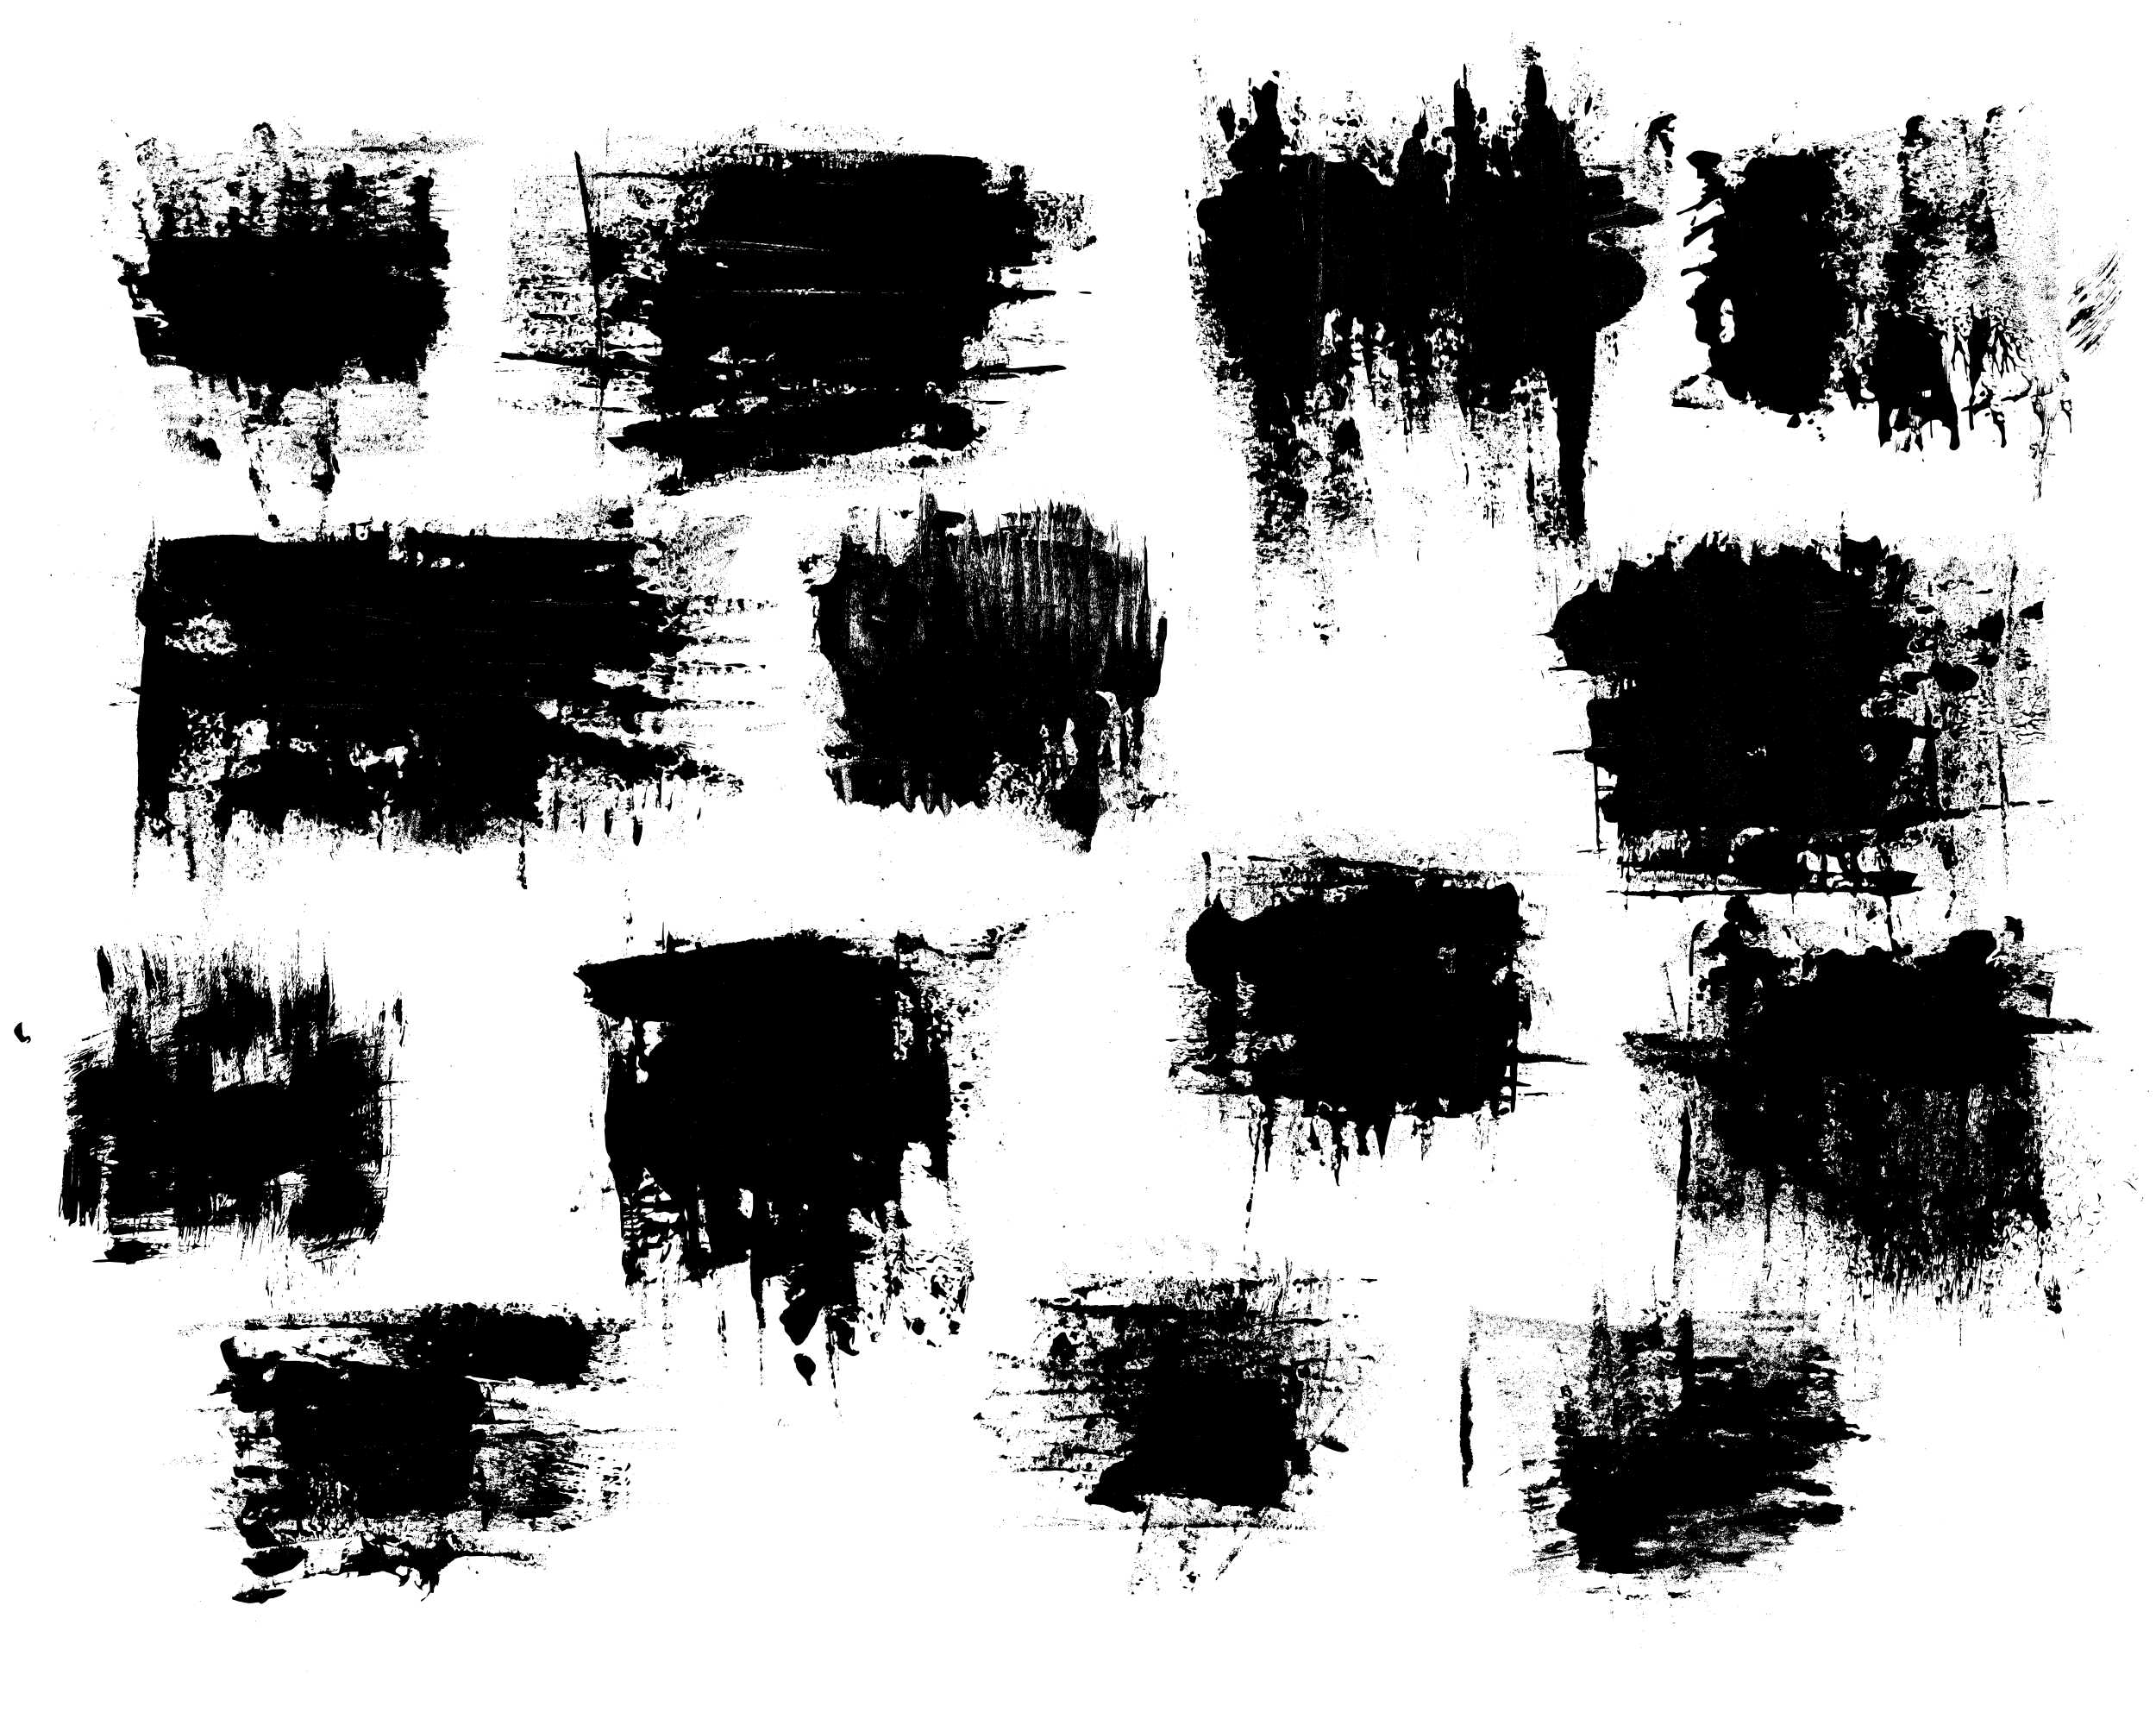 14-dry-grunge-paint-scratch-background-cover.jpg